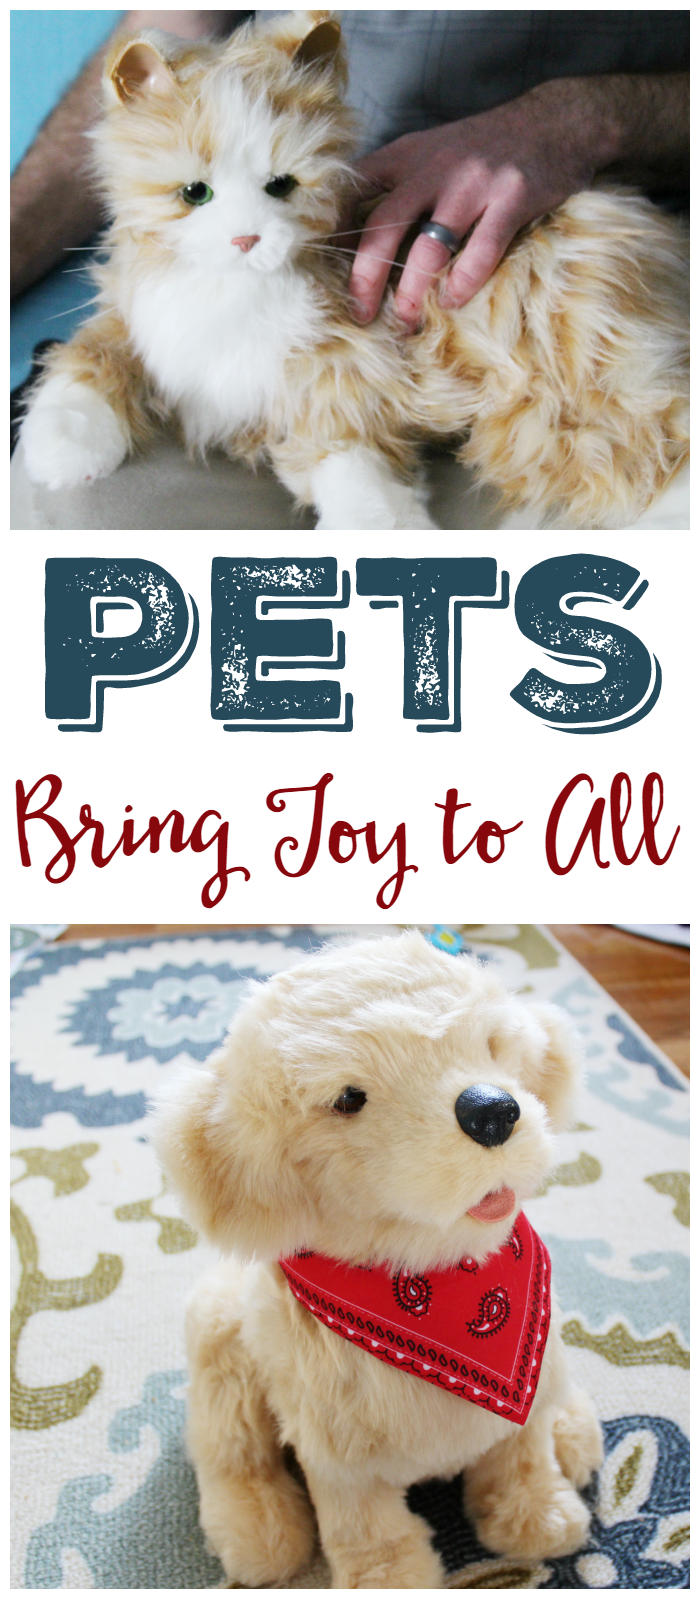 The Joy for All Companion Pet is a great way to bring joy to loved-ones without all the work of a real pet!